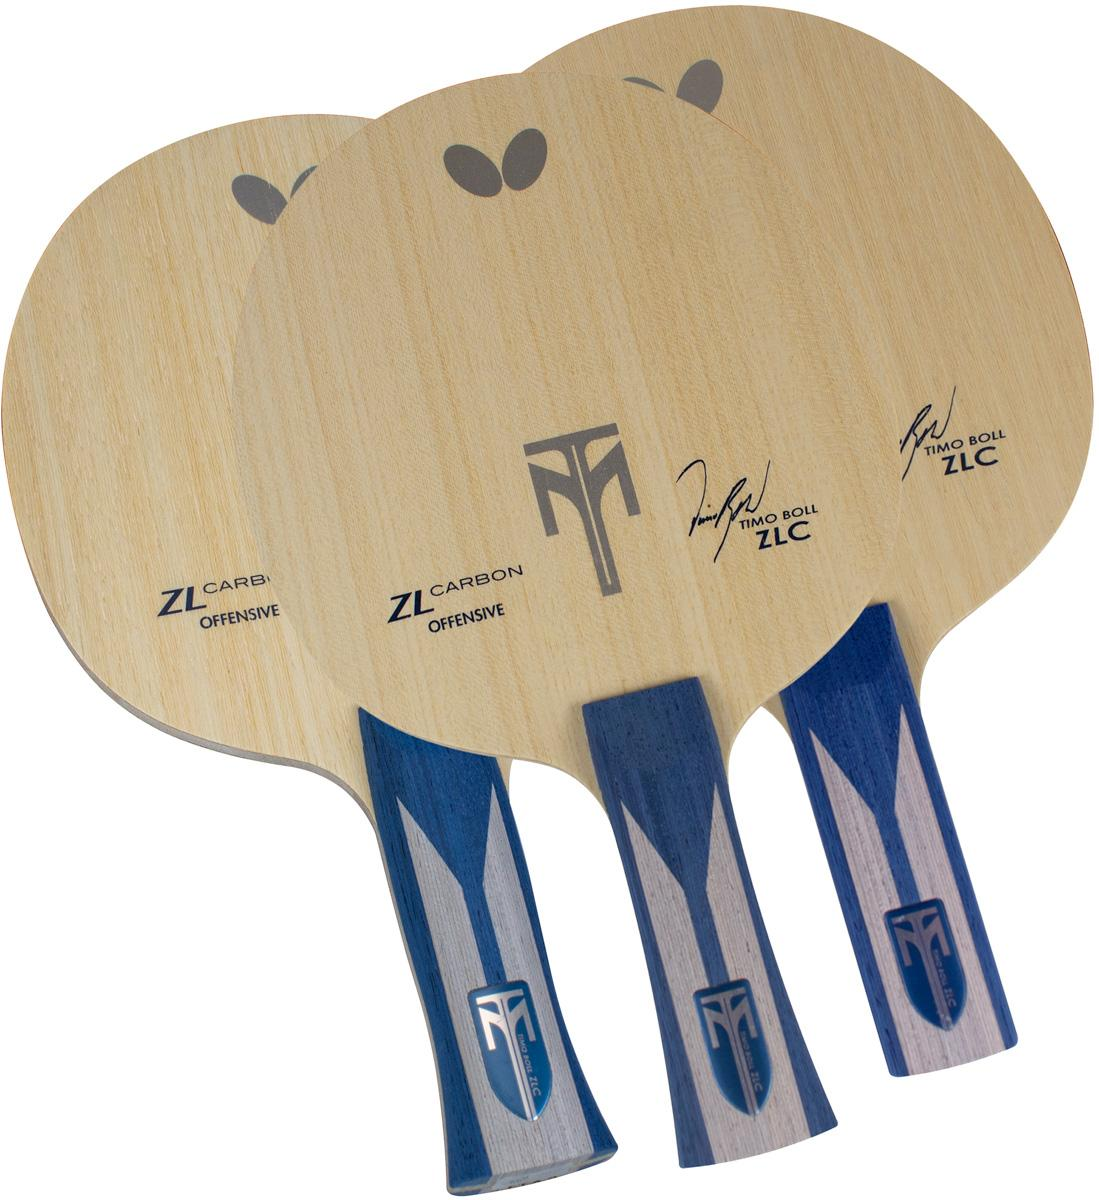 Cypress JP I-S Blade Butterfly Cypress JP I-S Table Tennis Blade Made in Japan Perfect for Traditional Japanese Penhold Backhand Style Kiso Hinoki 1-Ply Blade